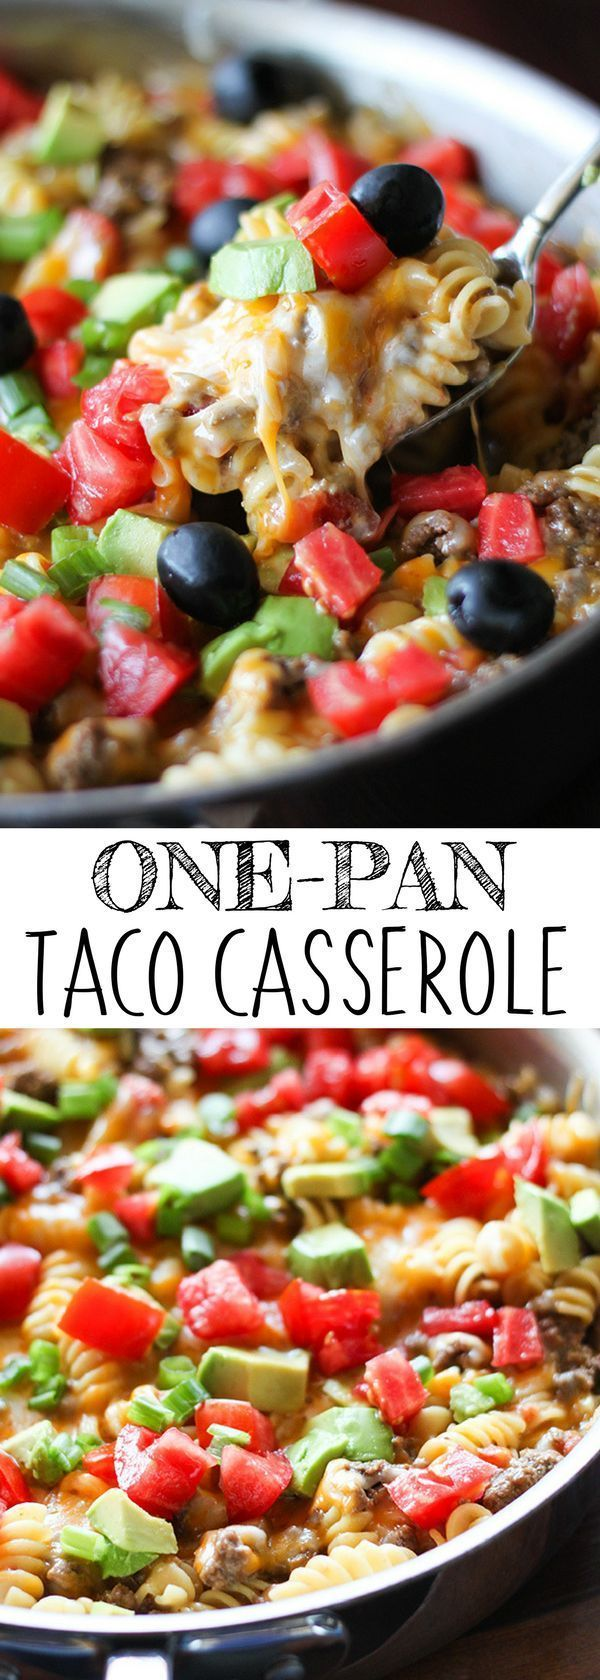 Looking for easy to make one-pot meals? This One-Pan Taco Casserole will be your new favorite. The pasta and ground beef is simmered in a flavorful broth seasoned with tomatoes, chili powder and cumin, and topped with melty cheese, fresh tomatoes and avocados. Add this to your collection of easy dinner recipes. For more easy food recipes, creative craft ideas, easy home decor and DIY projects, check us out at #no2pencil. #food #healthyrecipes #healthy #recipeoftheday #recipeideas